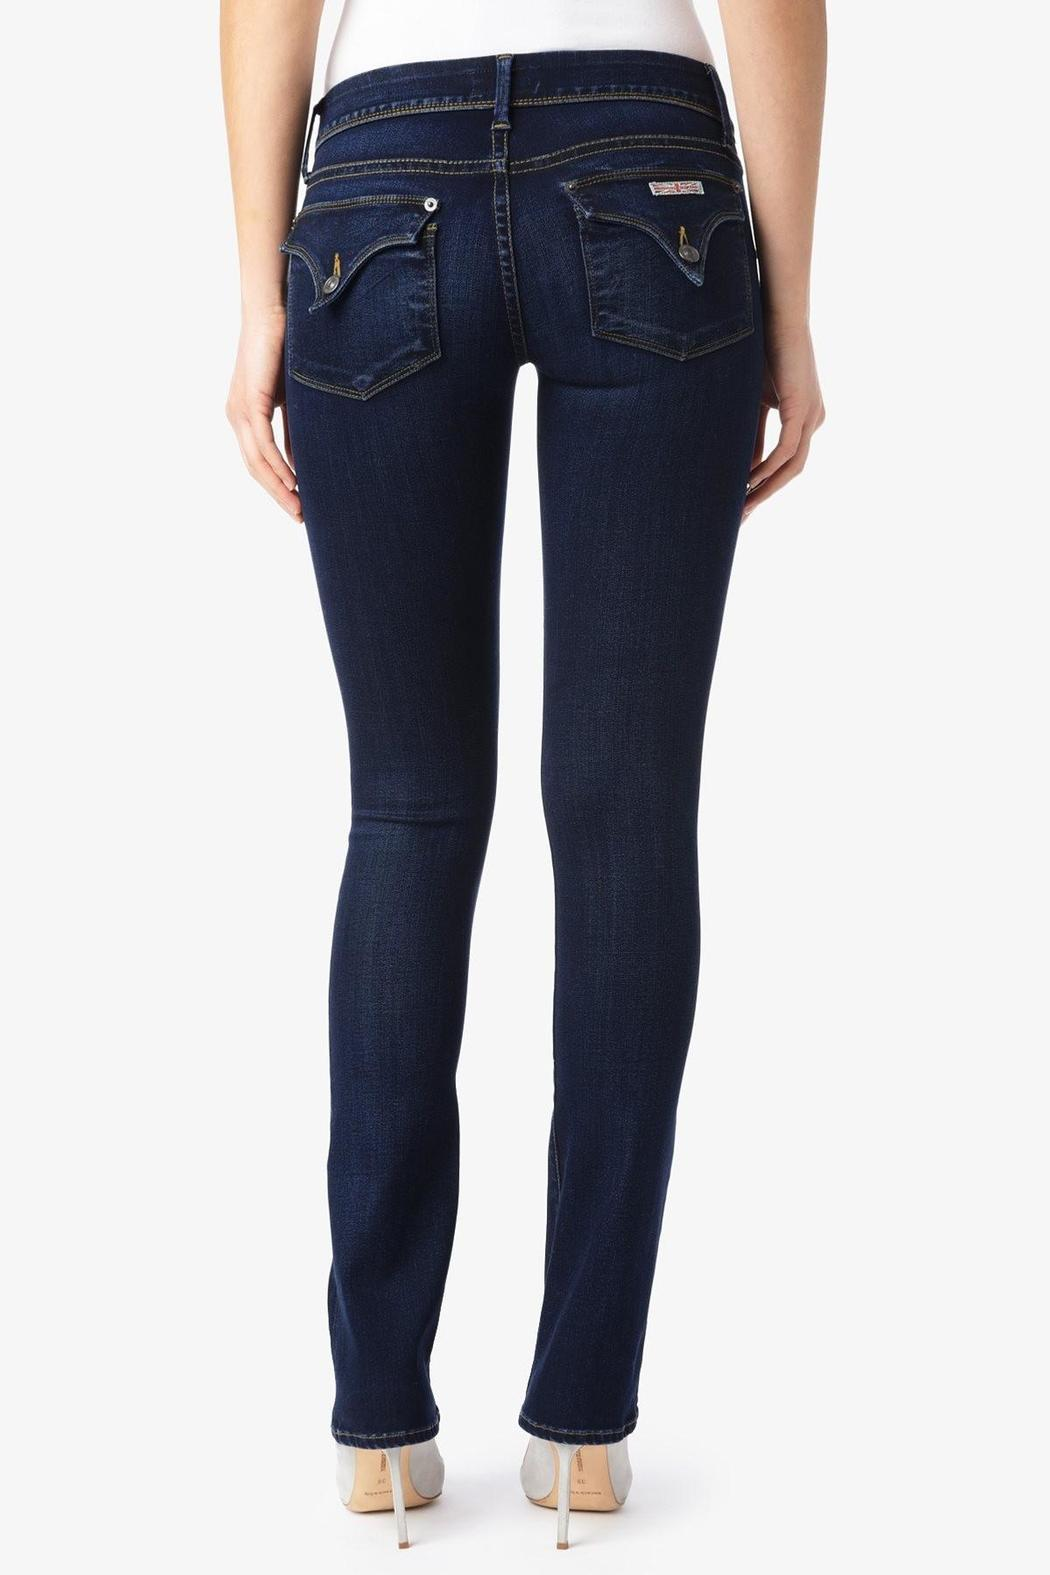 Hudson Jeans Beth Petite Bootcut - Front Cropped Image